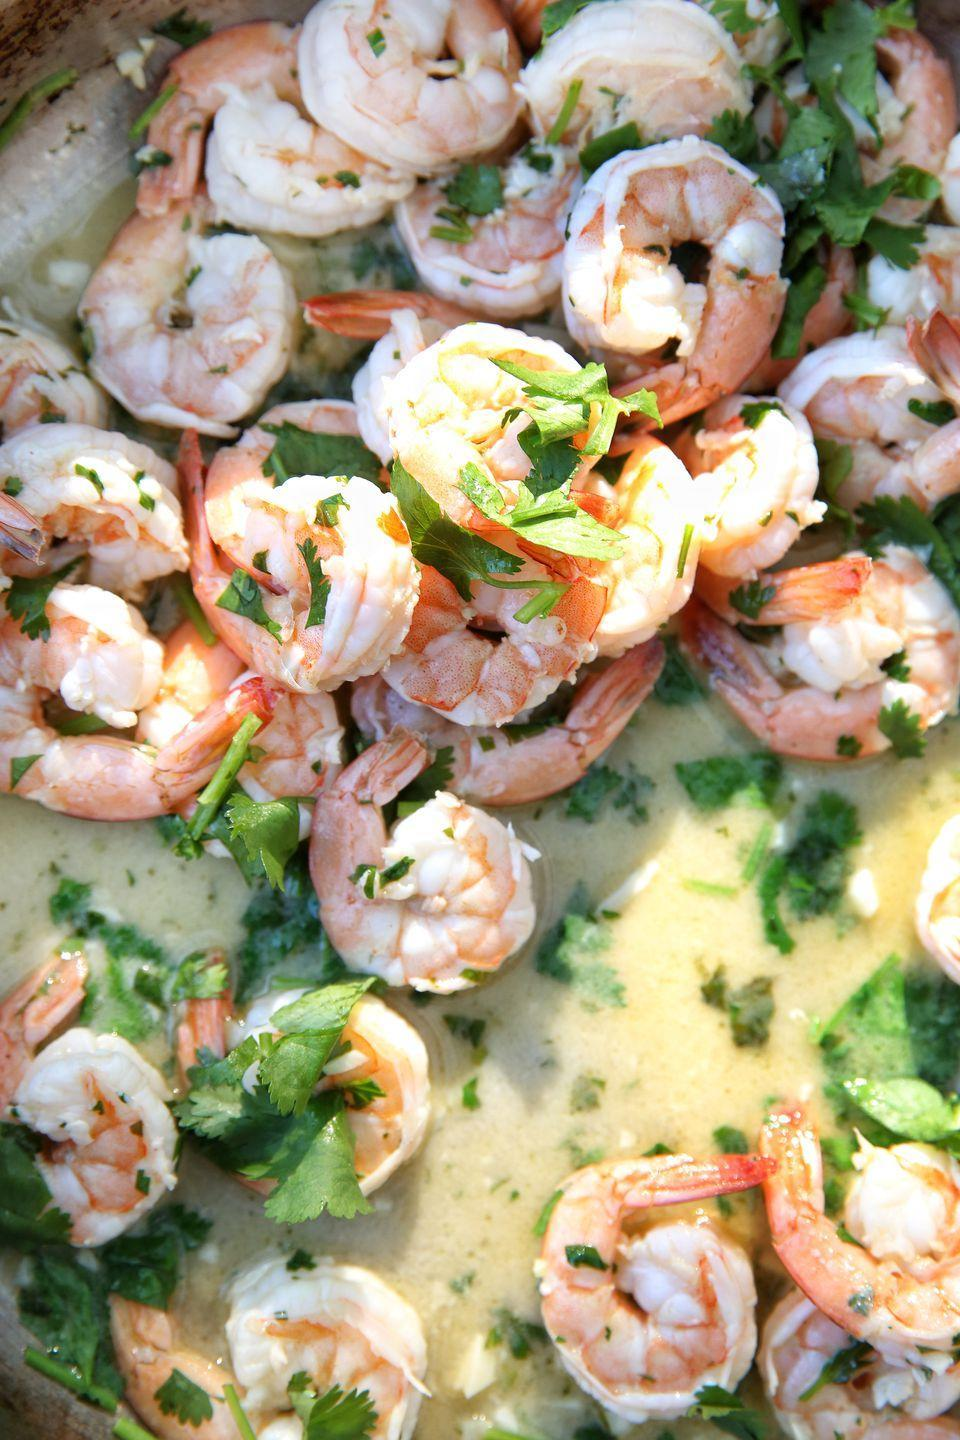 """<p>Shrimp tossed with fresh herbs and lime will wake up your taste buds.</p><p>Get the recipe from <a rel=""""nofollow noopener"""" href=""""https://www.delish.com/cooking/recipe-ideas/recipes/a49221/jerk-salmon-with-couscous-recipe/"""" target=""""_blank"""" data-ylk=""""slk:Delish"""" class=""""link rapid-noclick-resp"""">Delish</a>.</p>"""